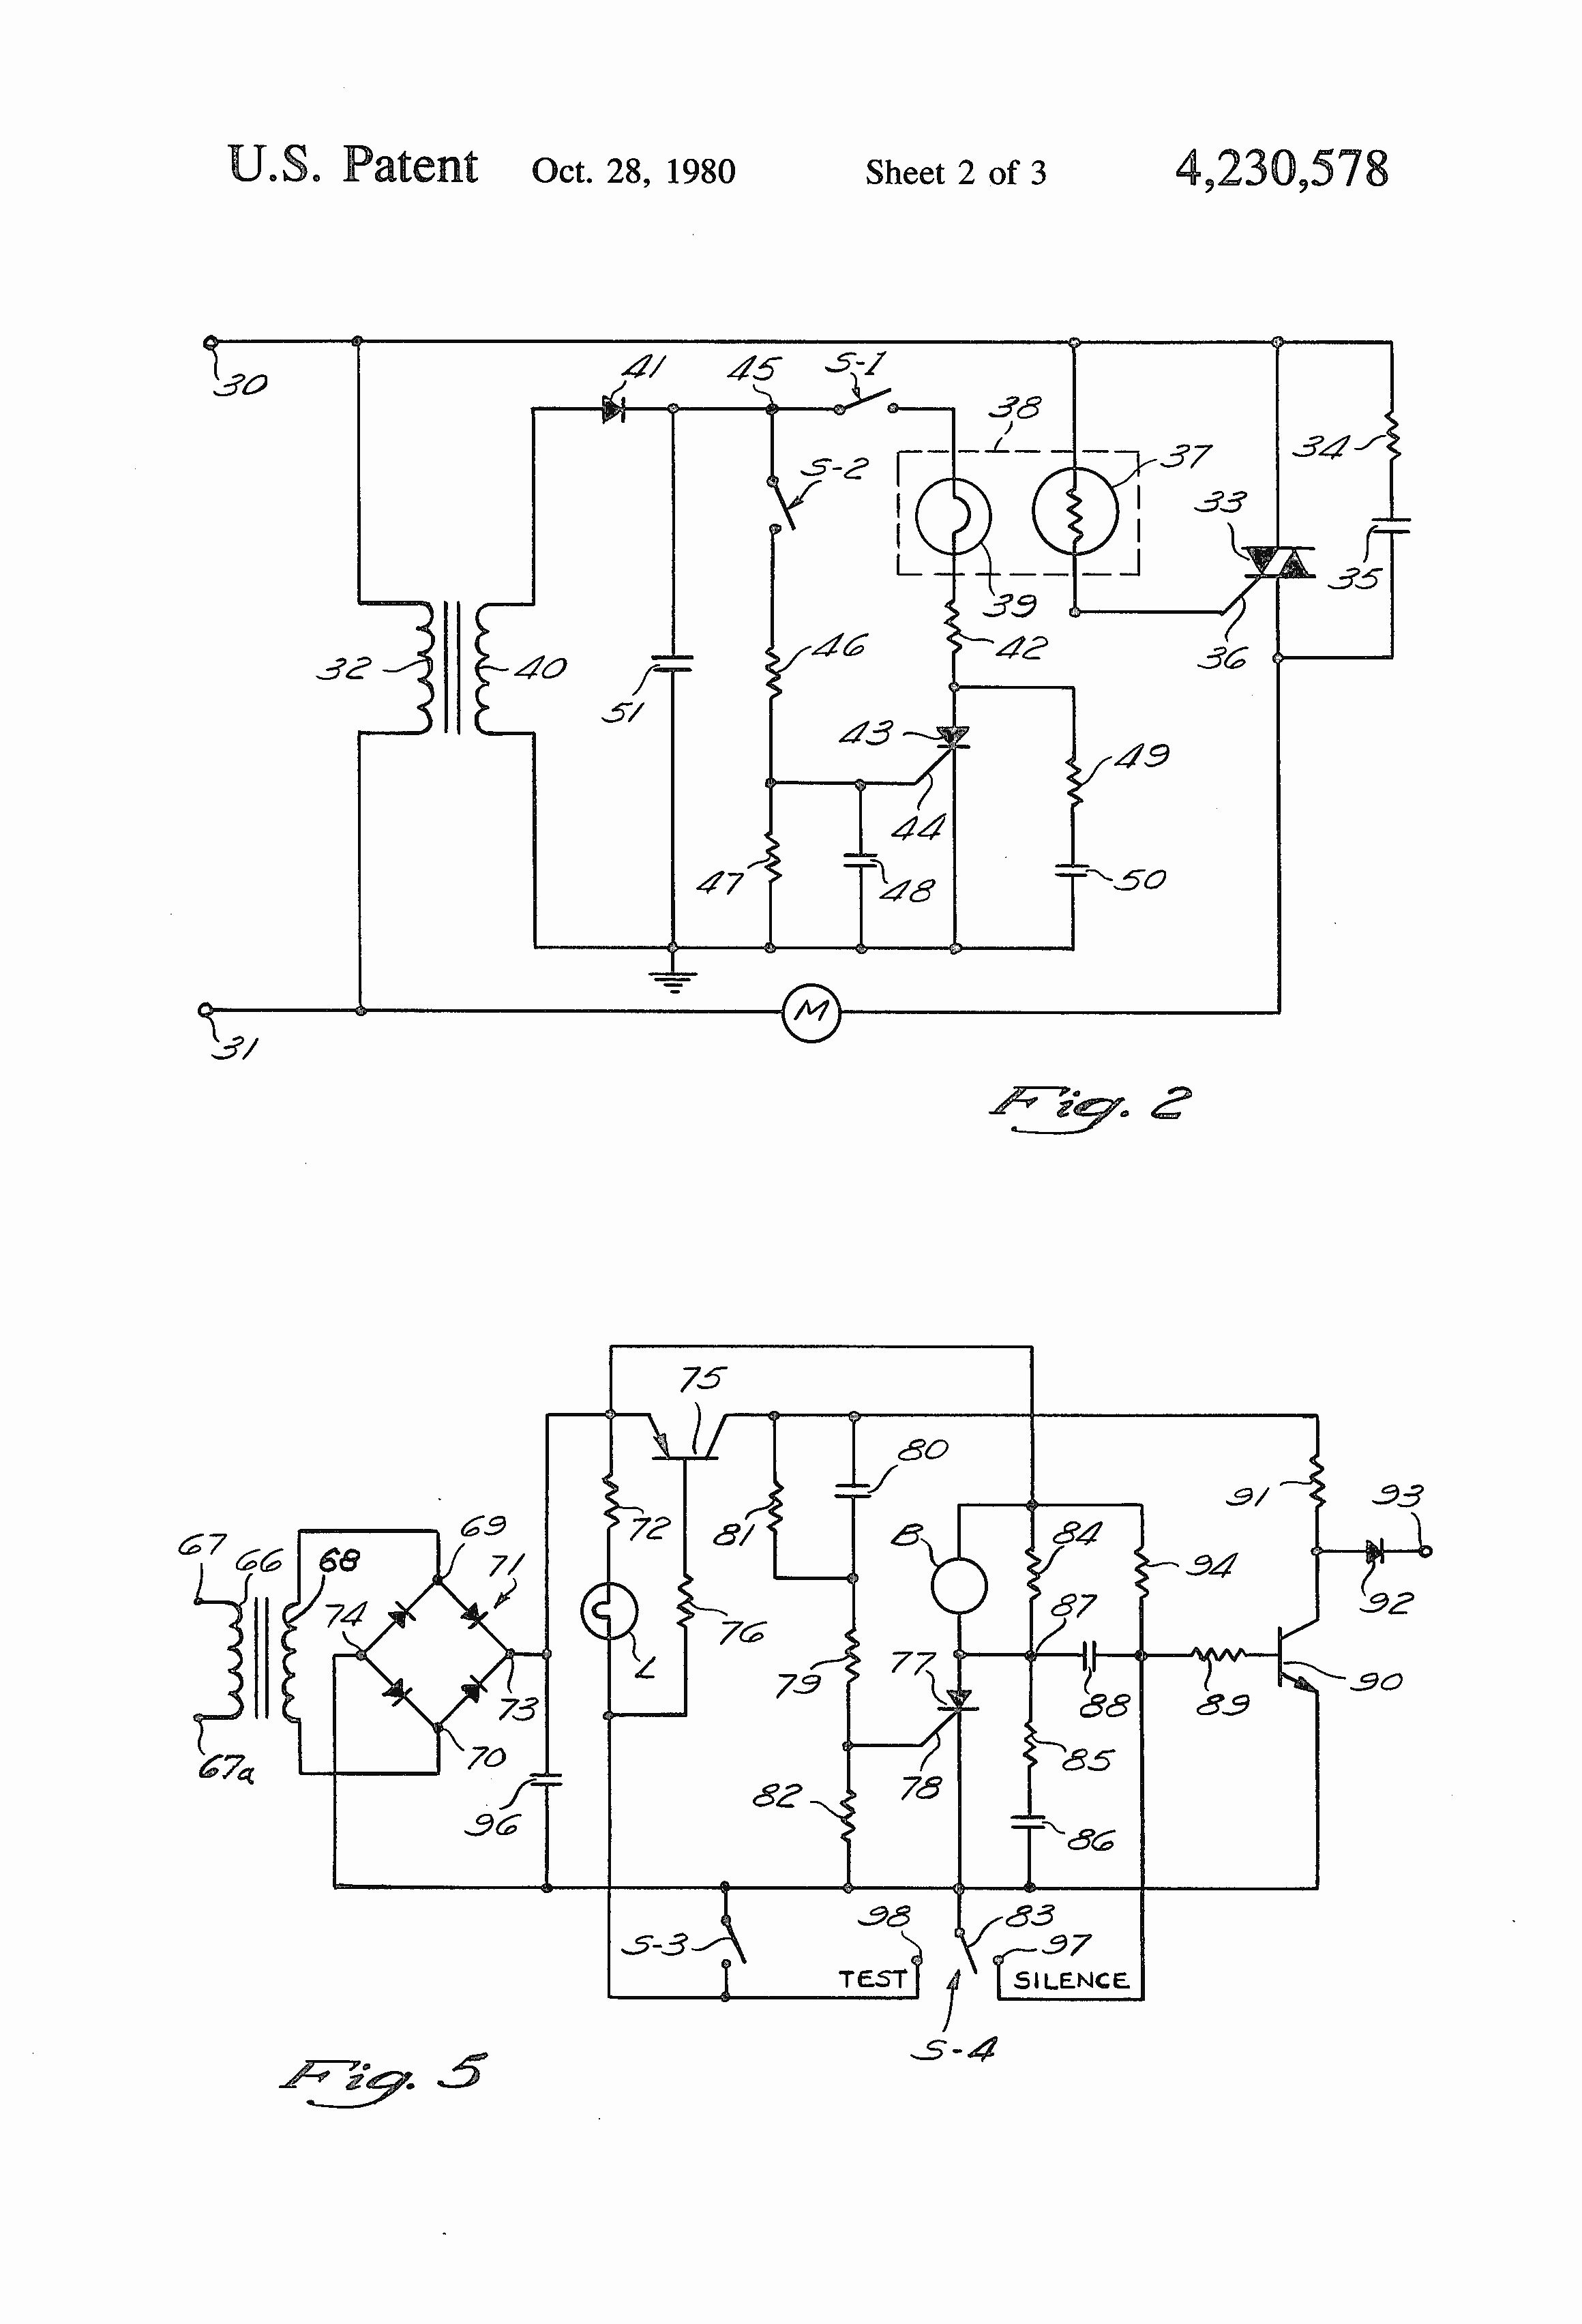 Ford Boss Plow Wiring Diagram - All Wiring Diagram - Boss Plow Wiring Diagram